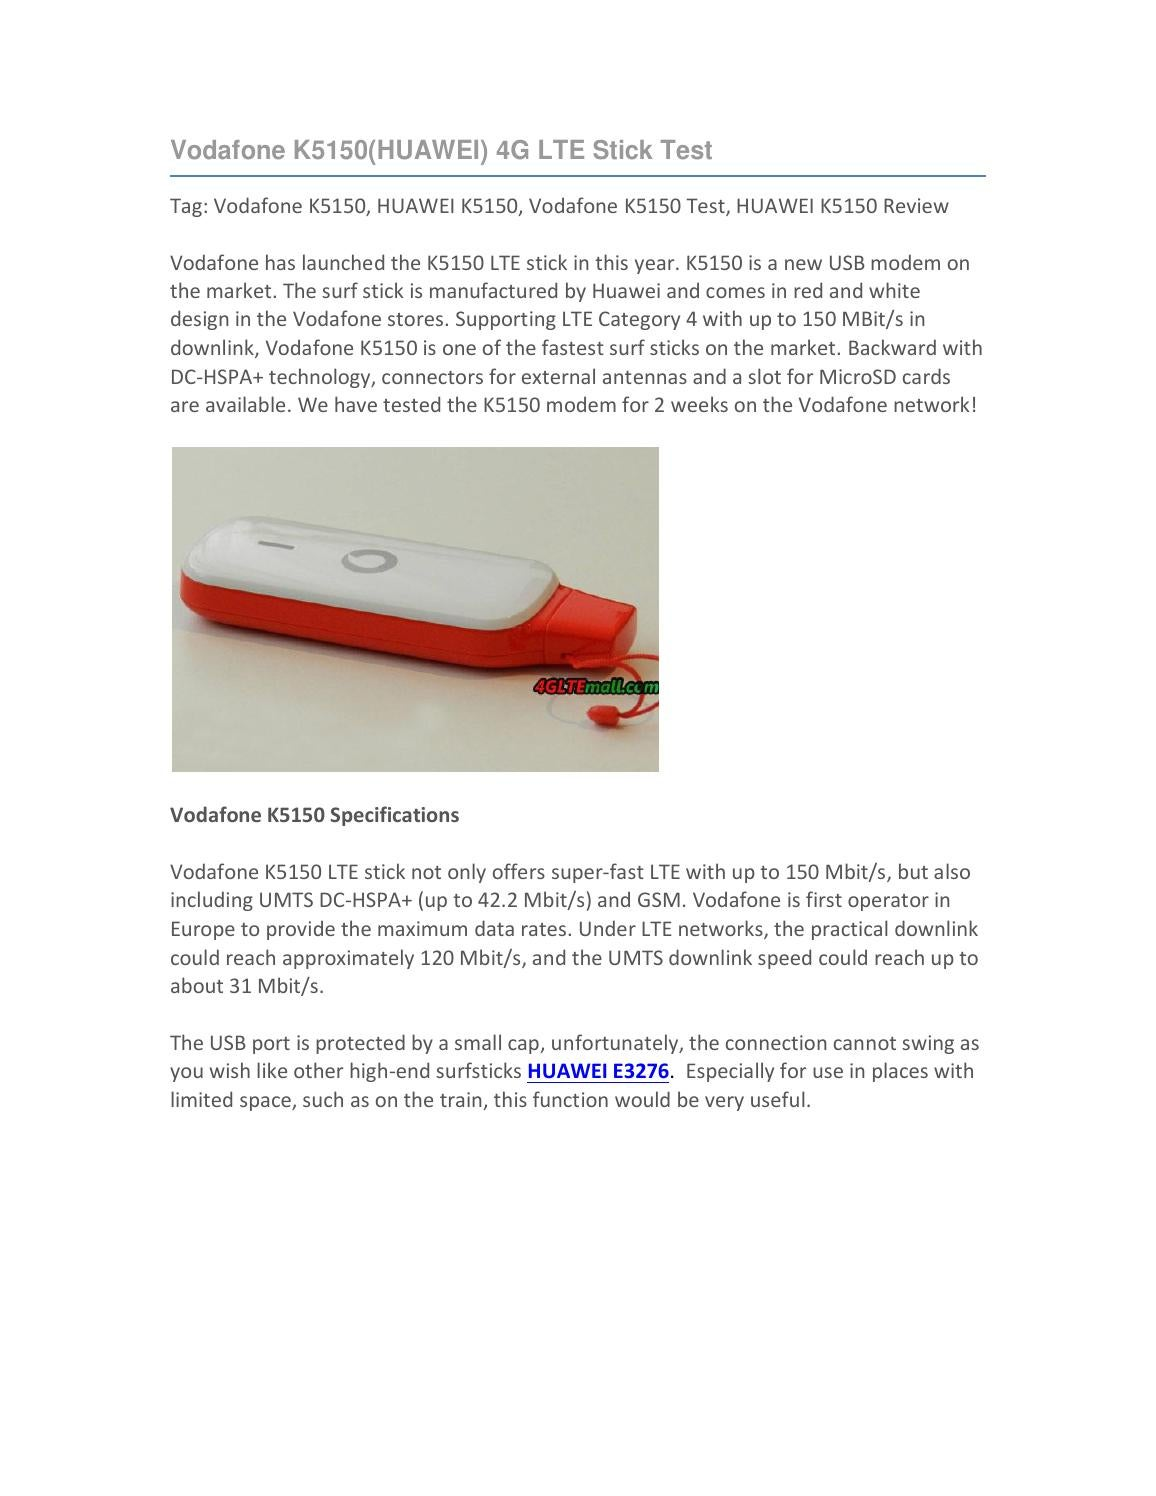 Vodafone K5150(HUAWEI) 4G LTE Stick Test by Lte Mall